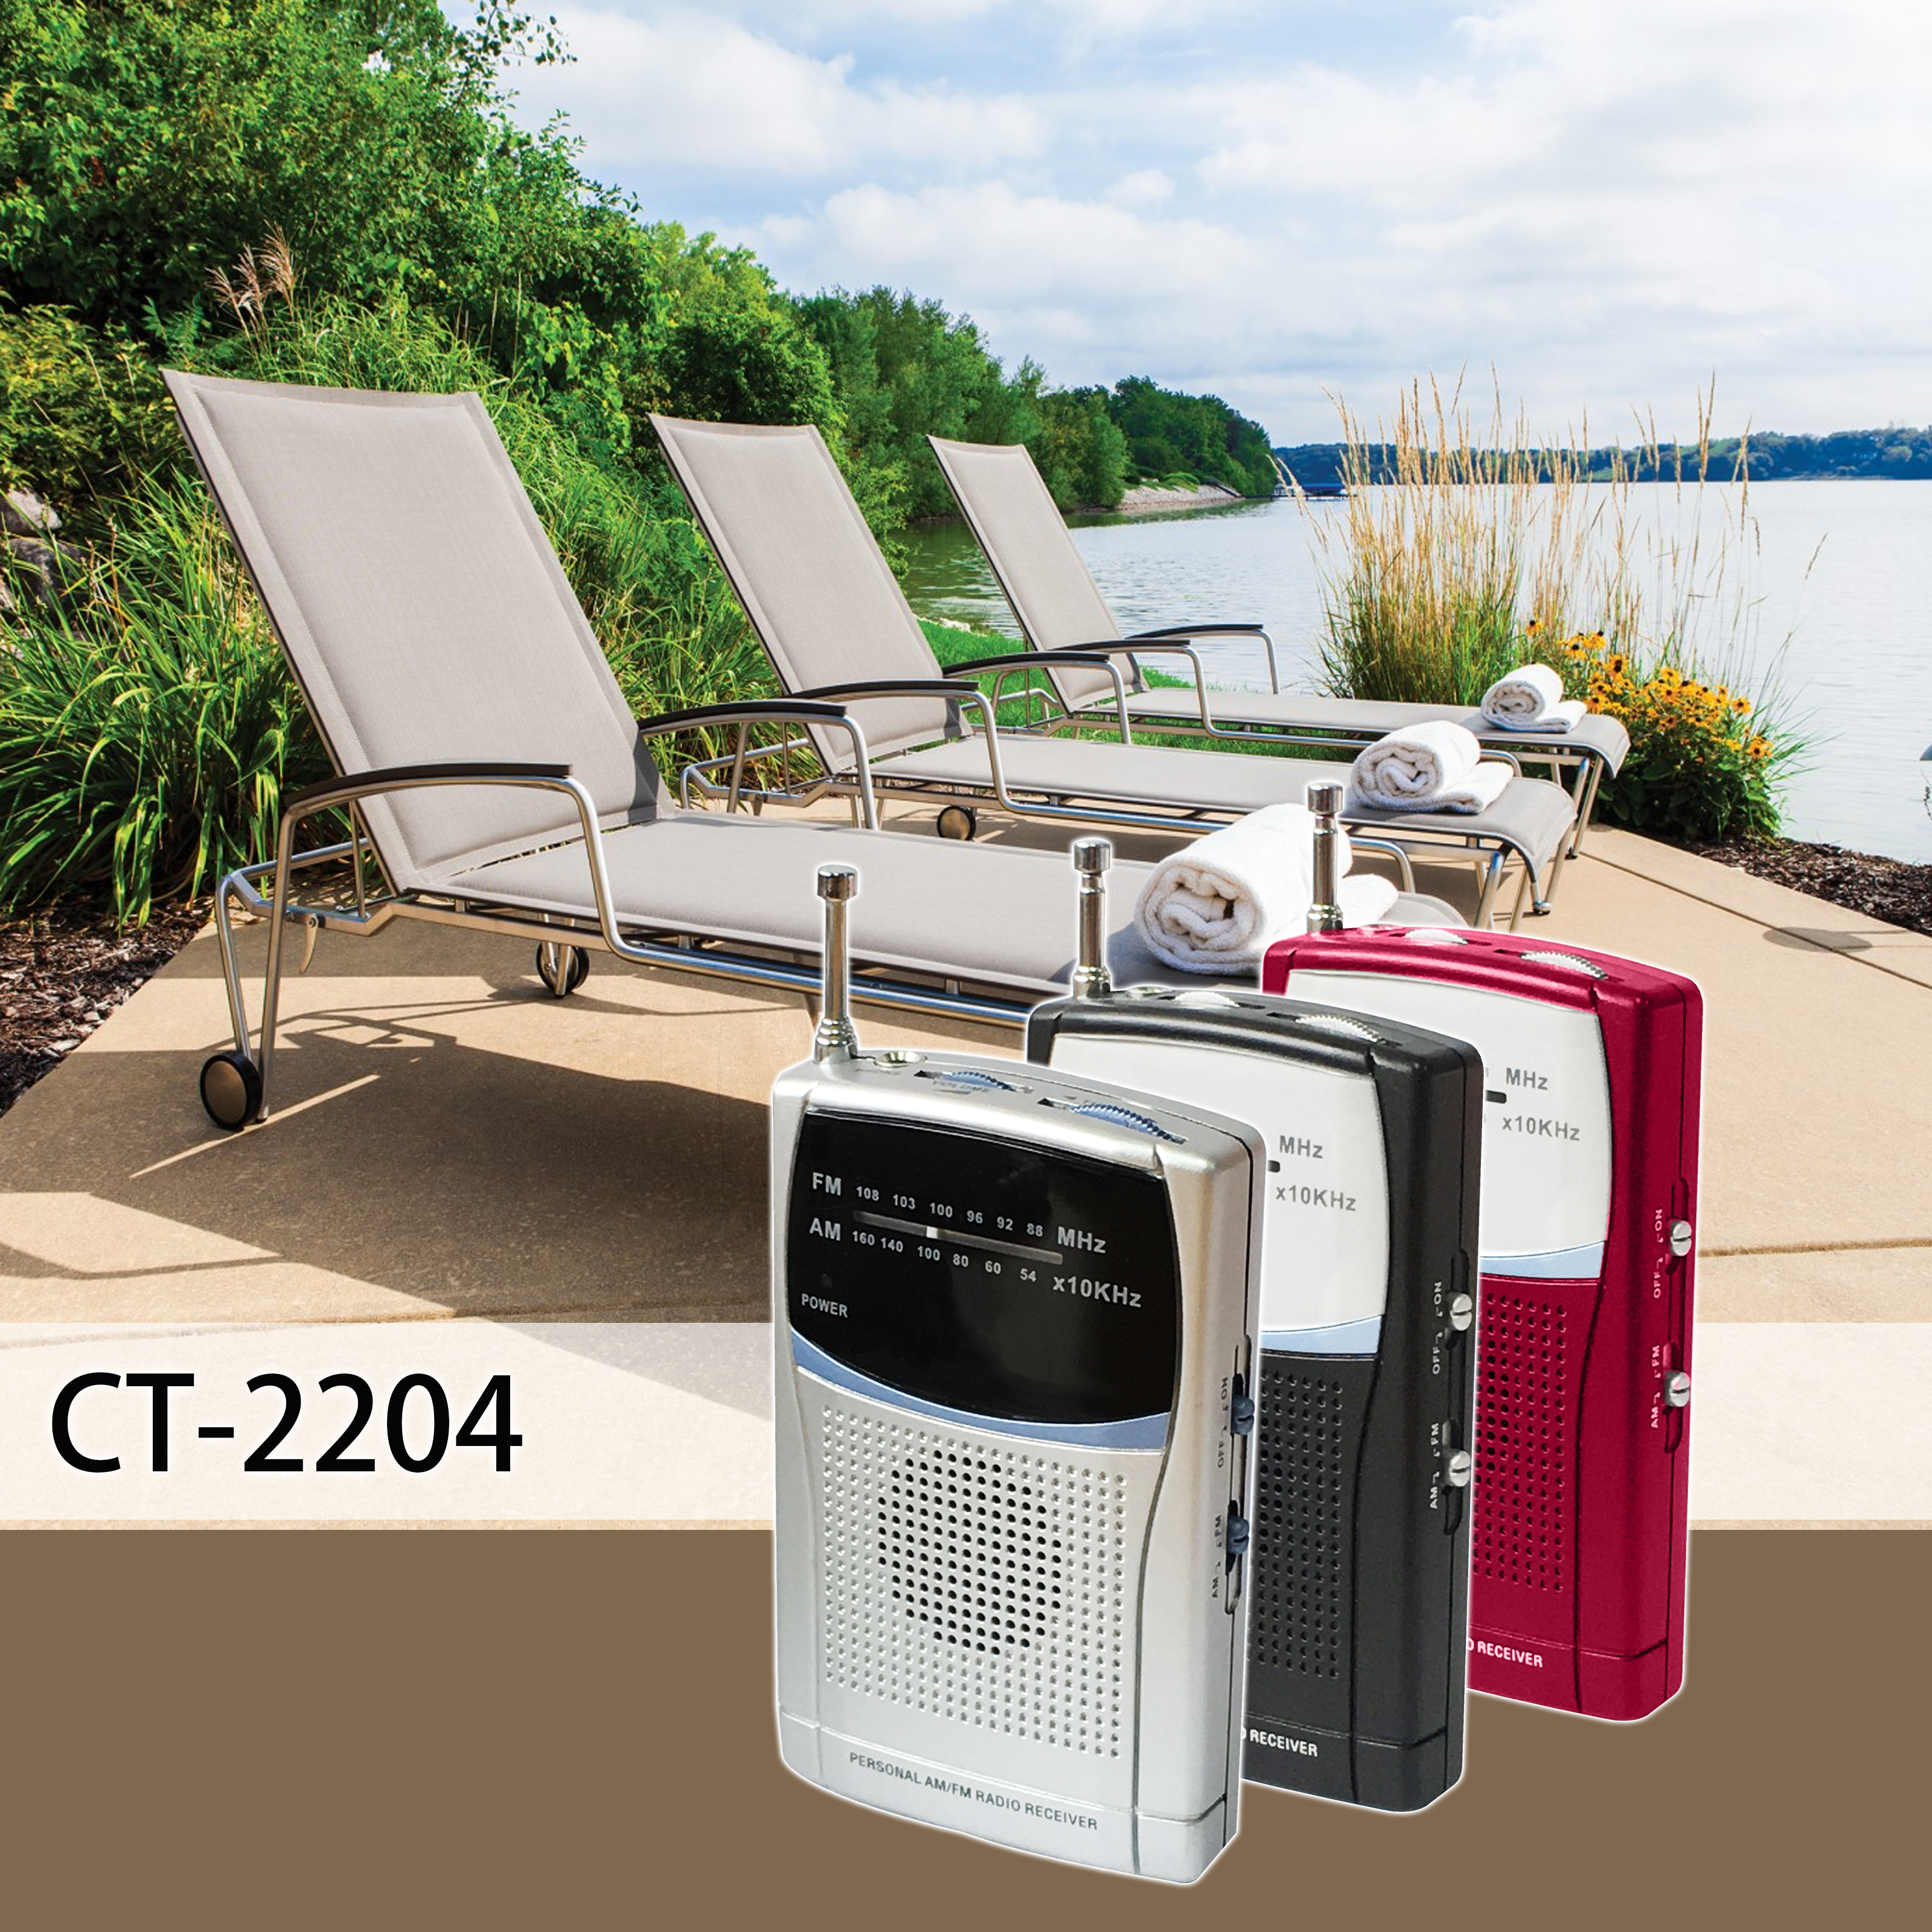 CT-2204 pool side.jpg